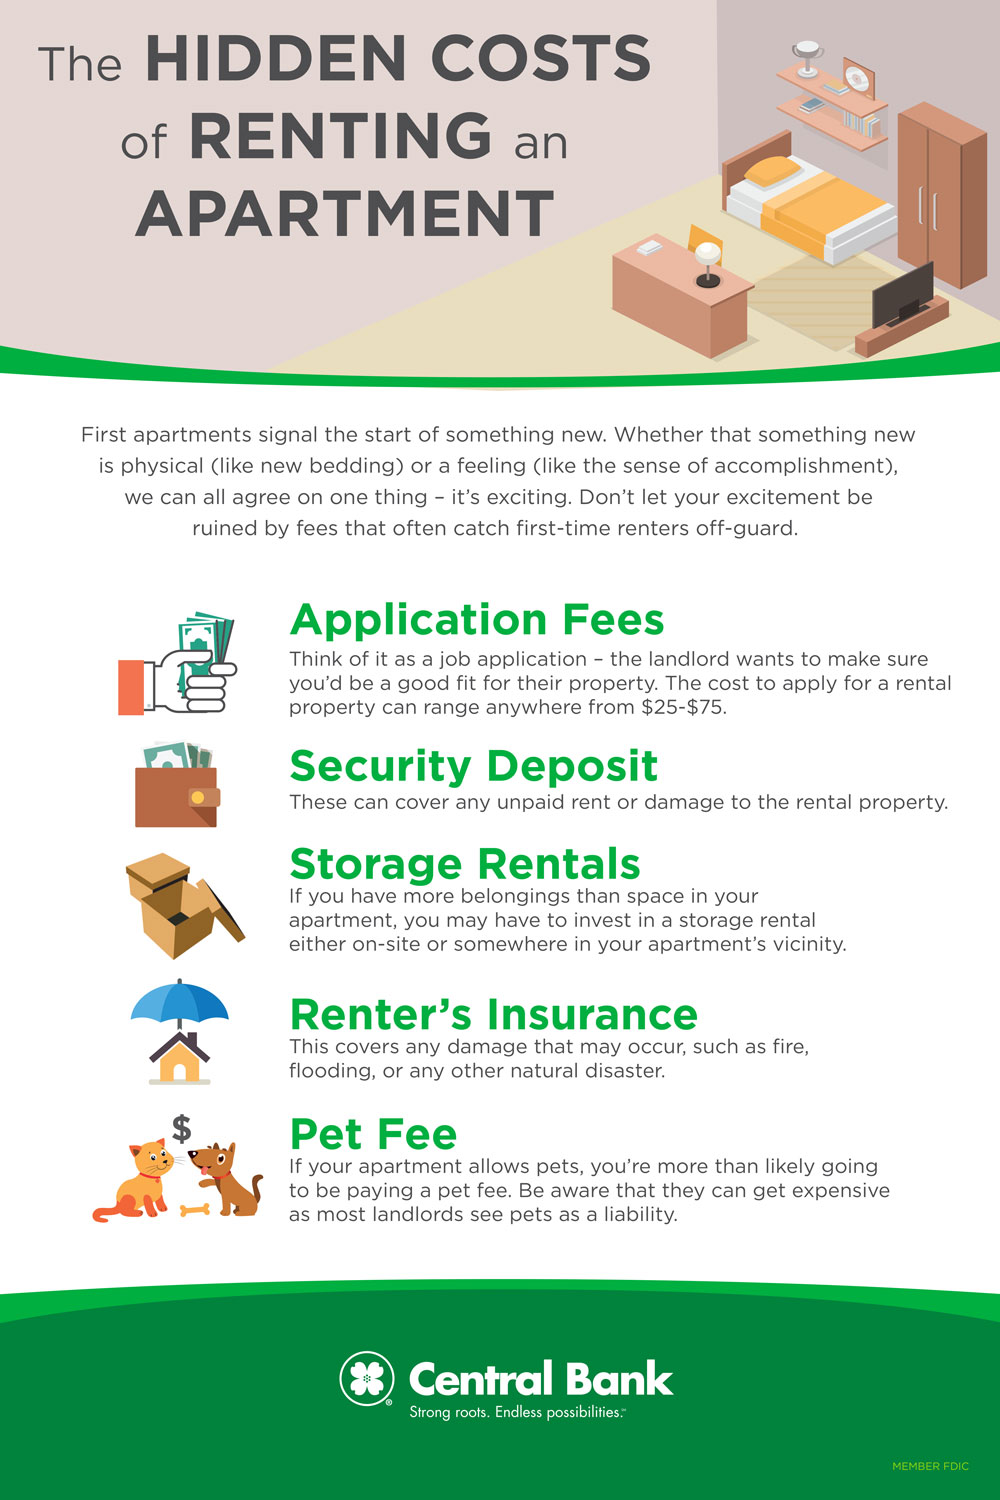 The hidden costs of renting an apartment-infographic